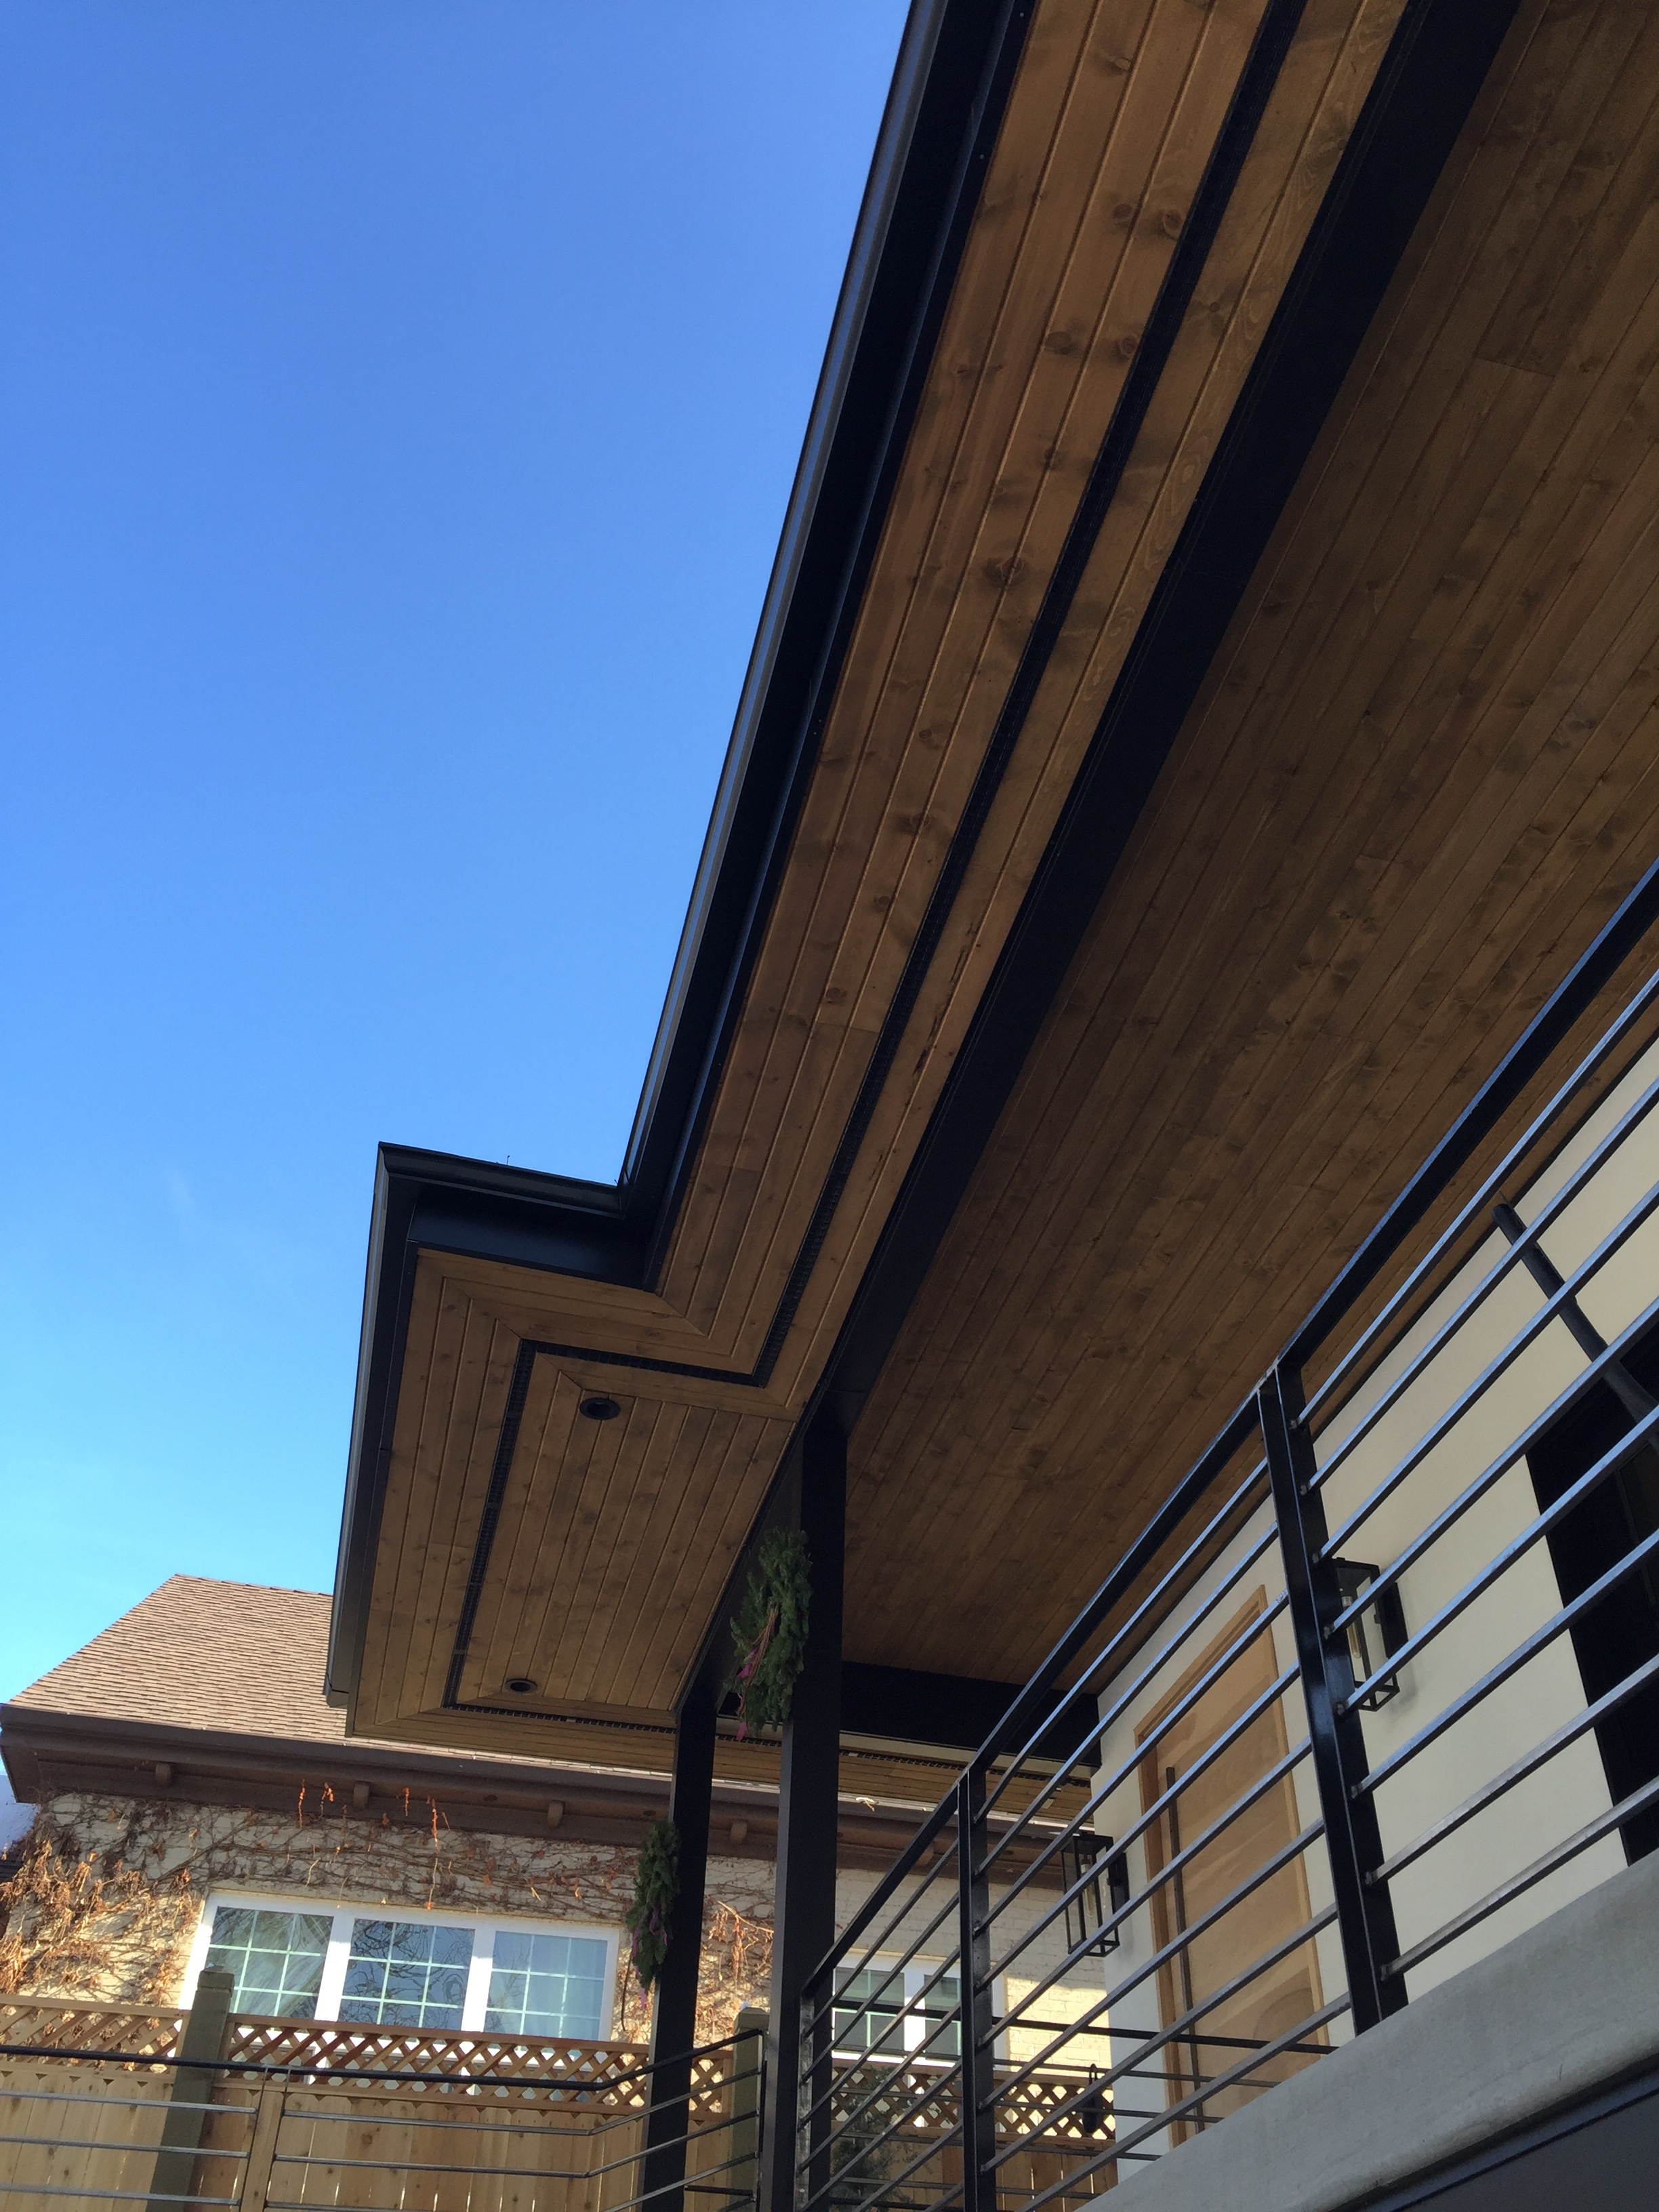 Aluminum fascia, wood tongue and groove soffit, aluminum rain gutter